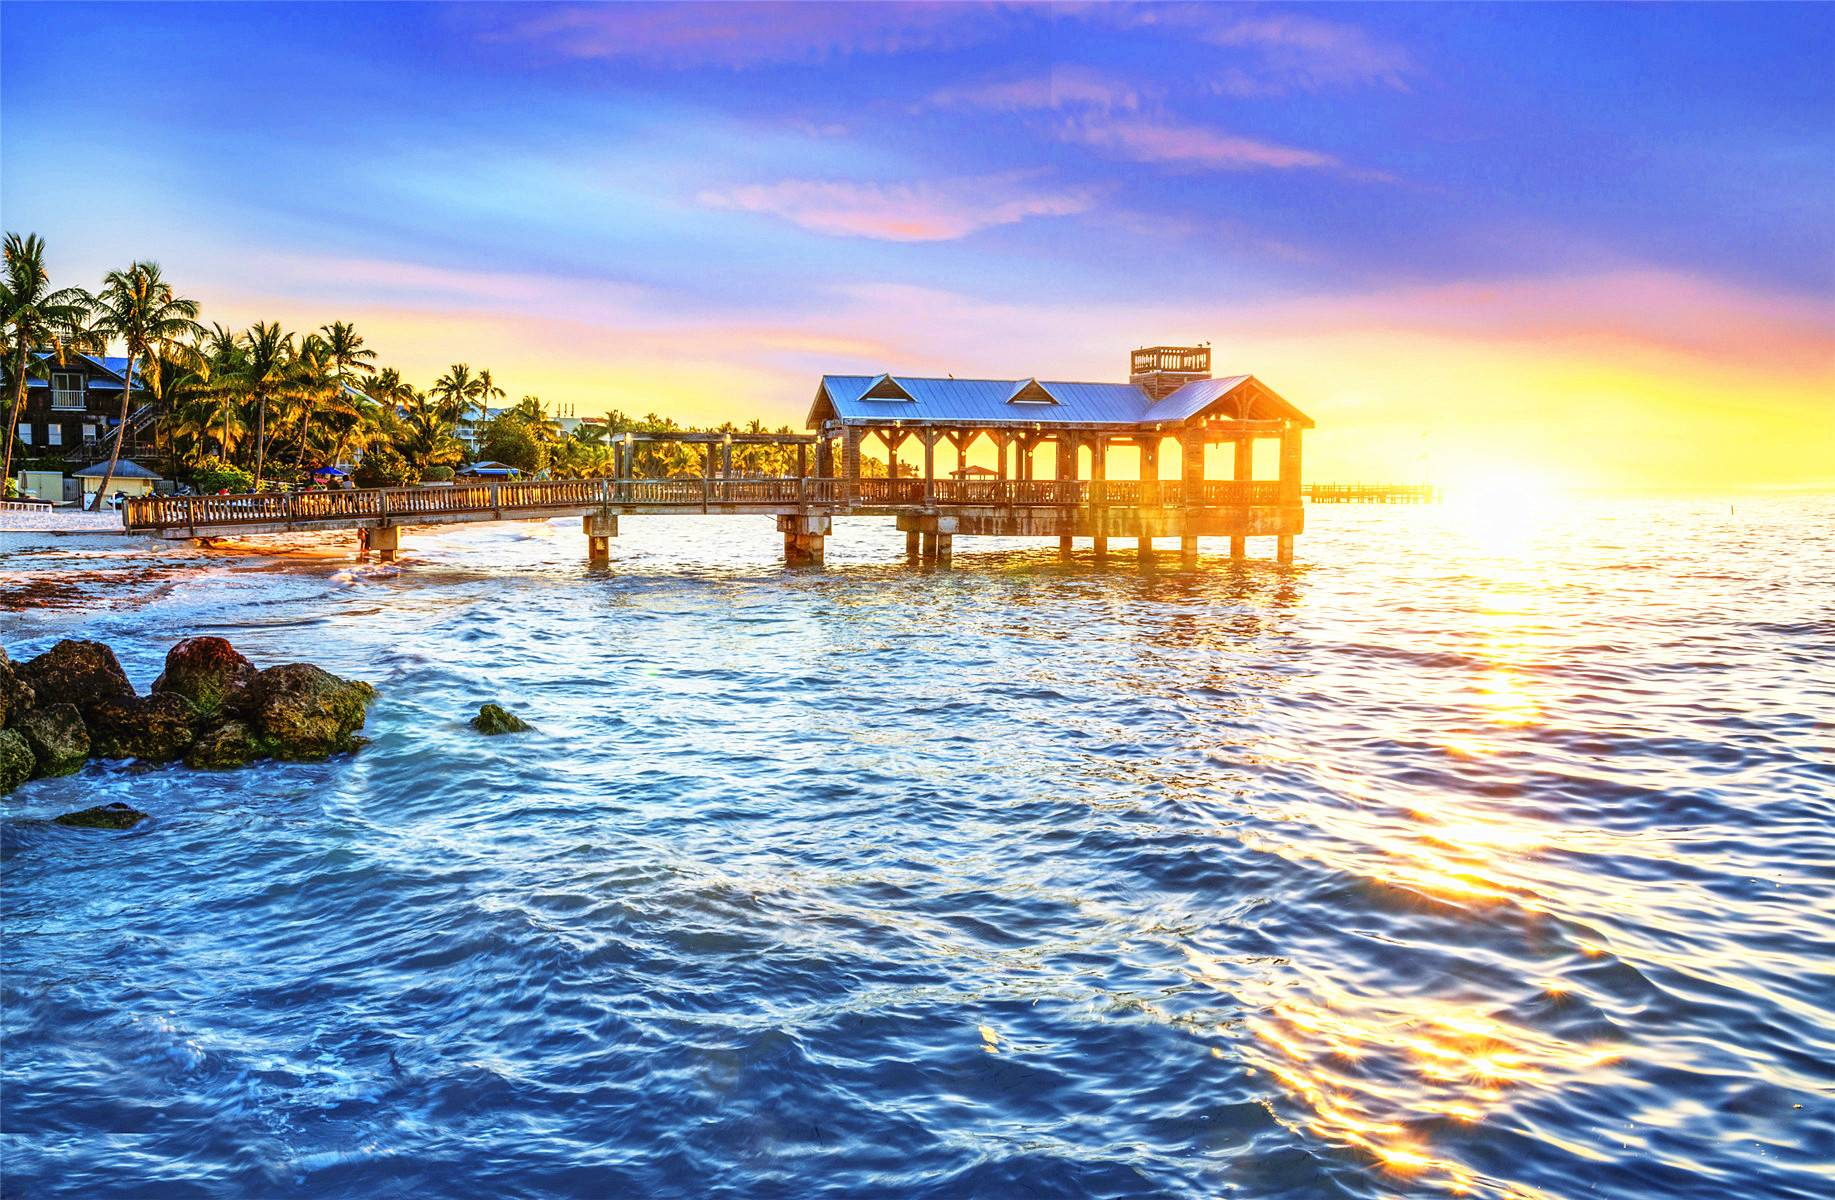 8 Day Miami Everglades Key West Fort Lauderdale Tour